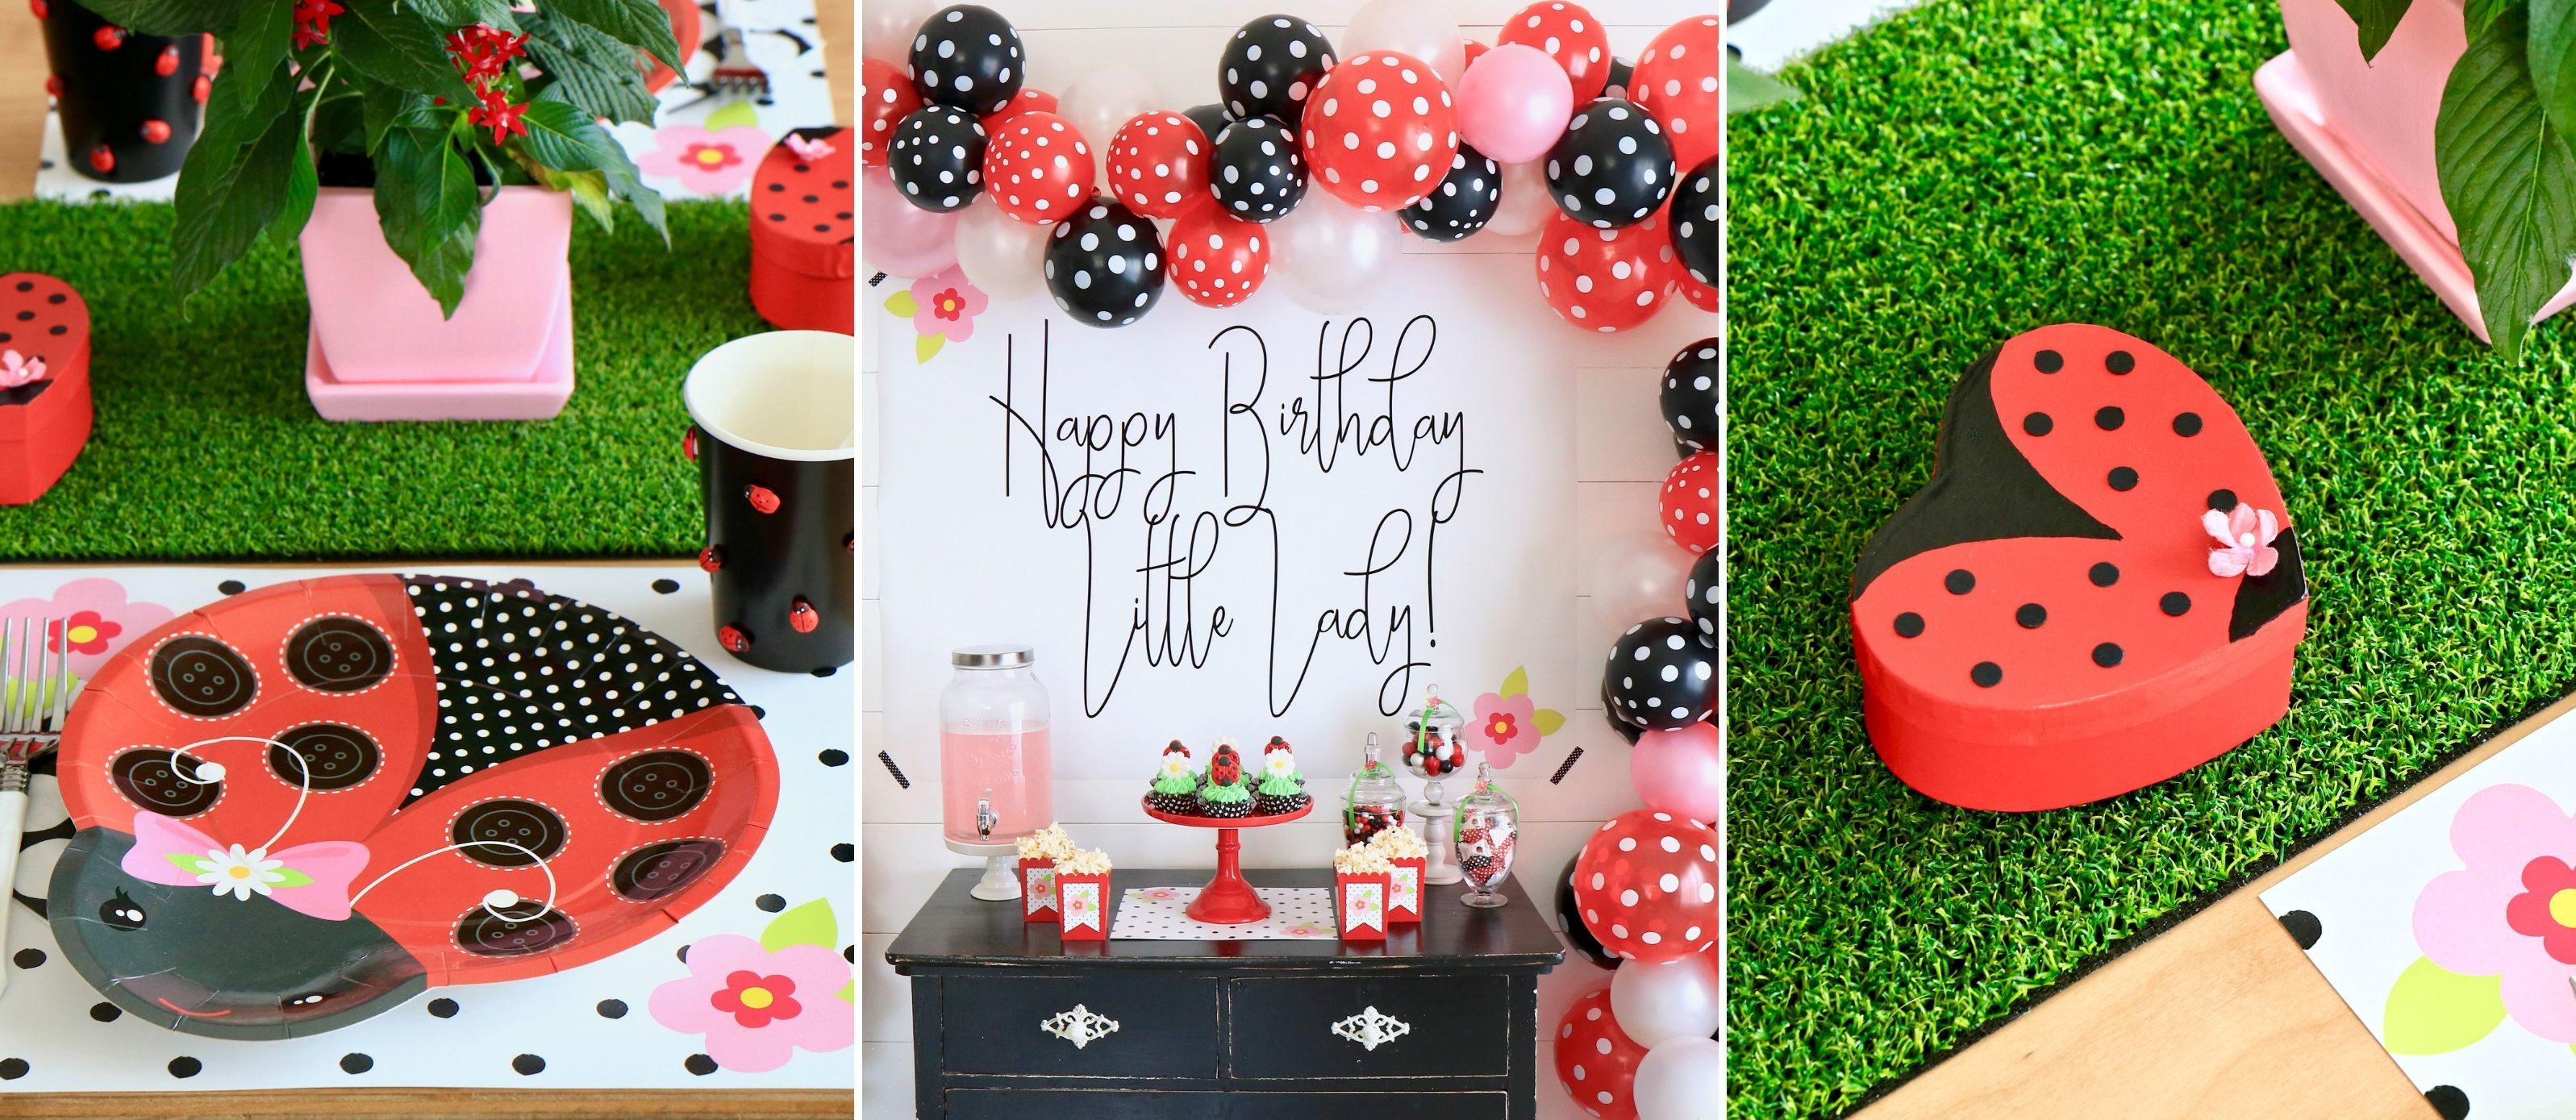 Phenomenal Little Ladybug First Birthday Party Fun365 Personalised Birthday Cards Sponlily Jamesorg